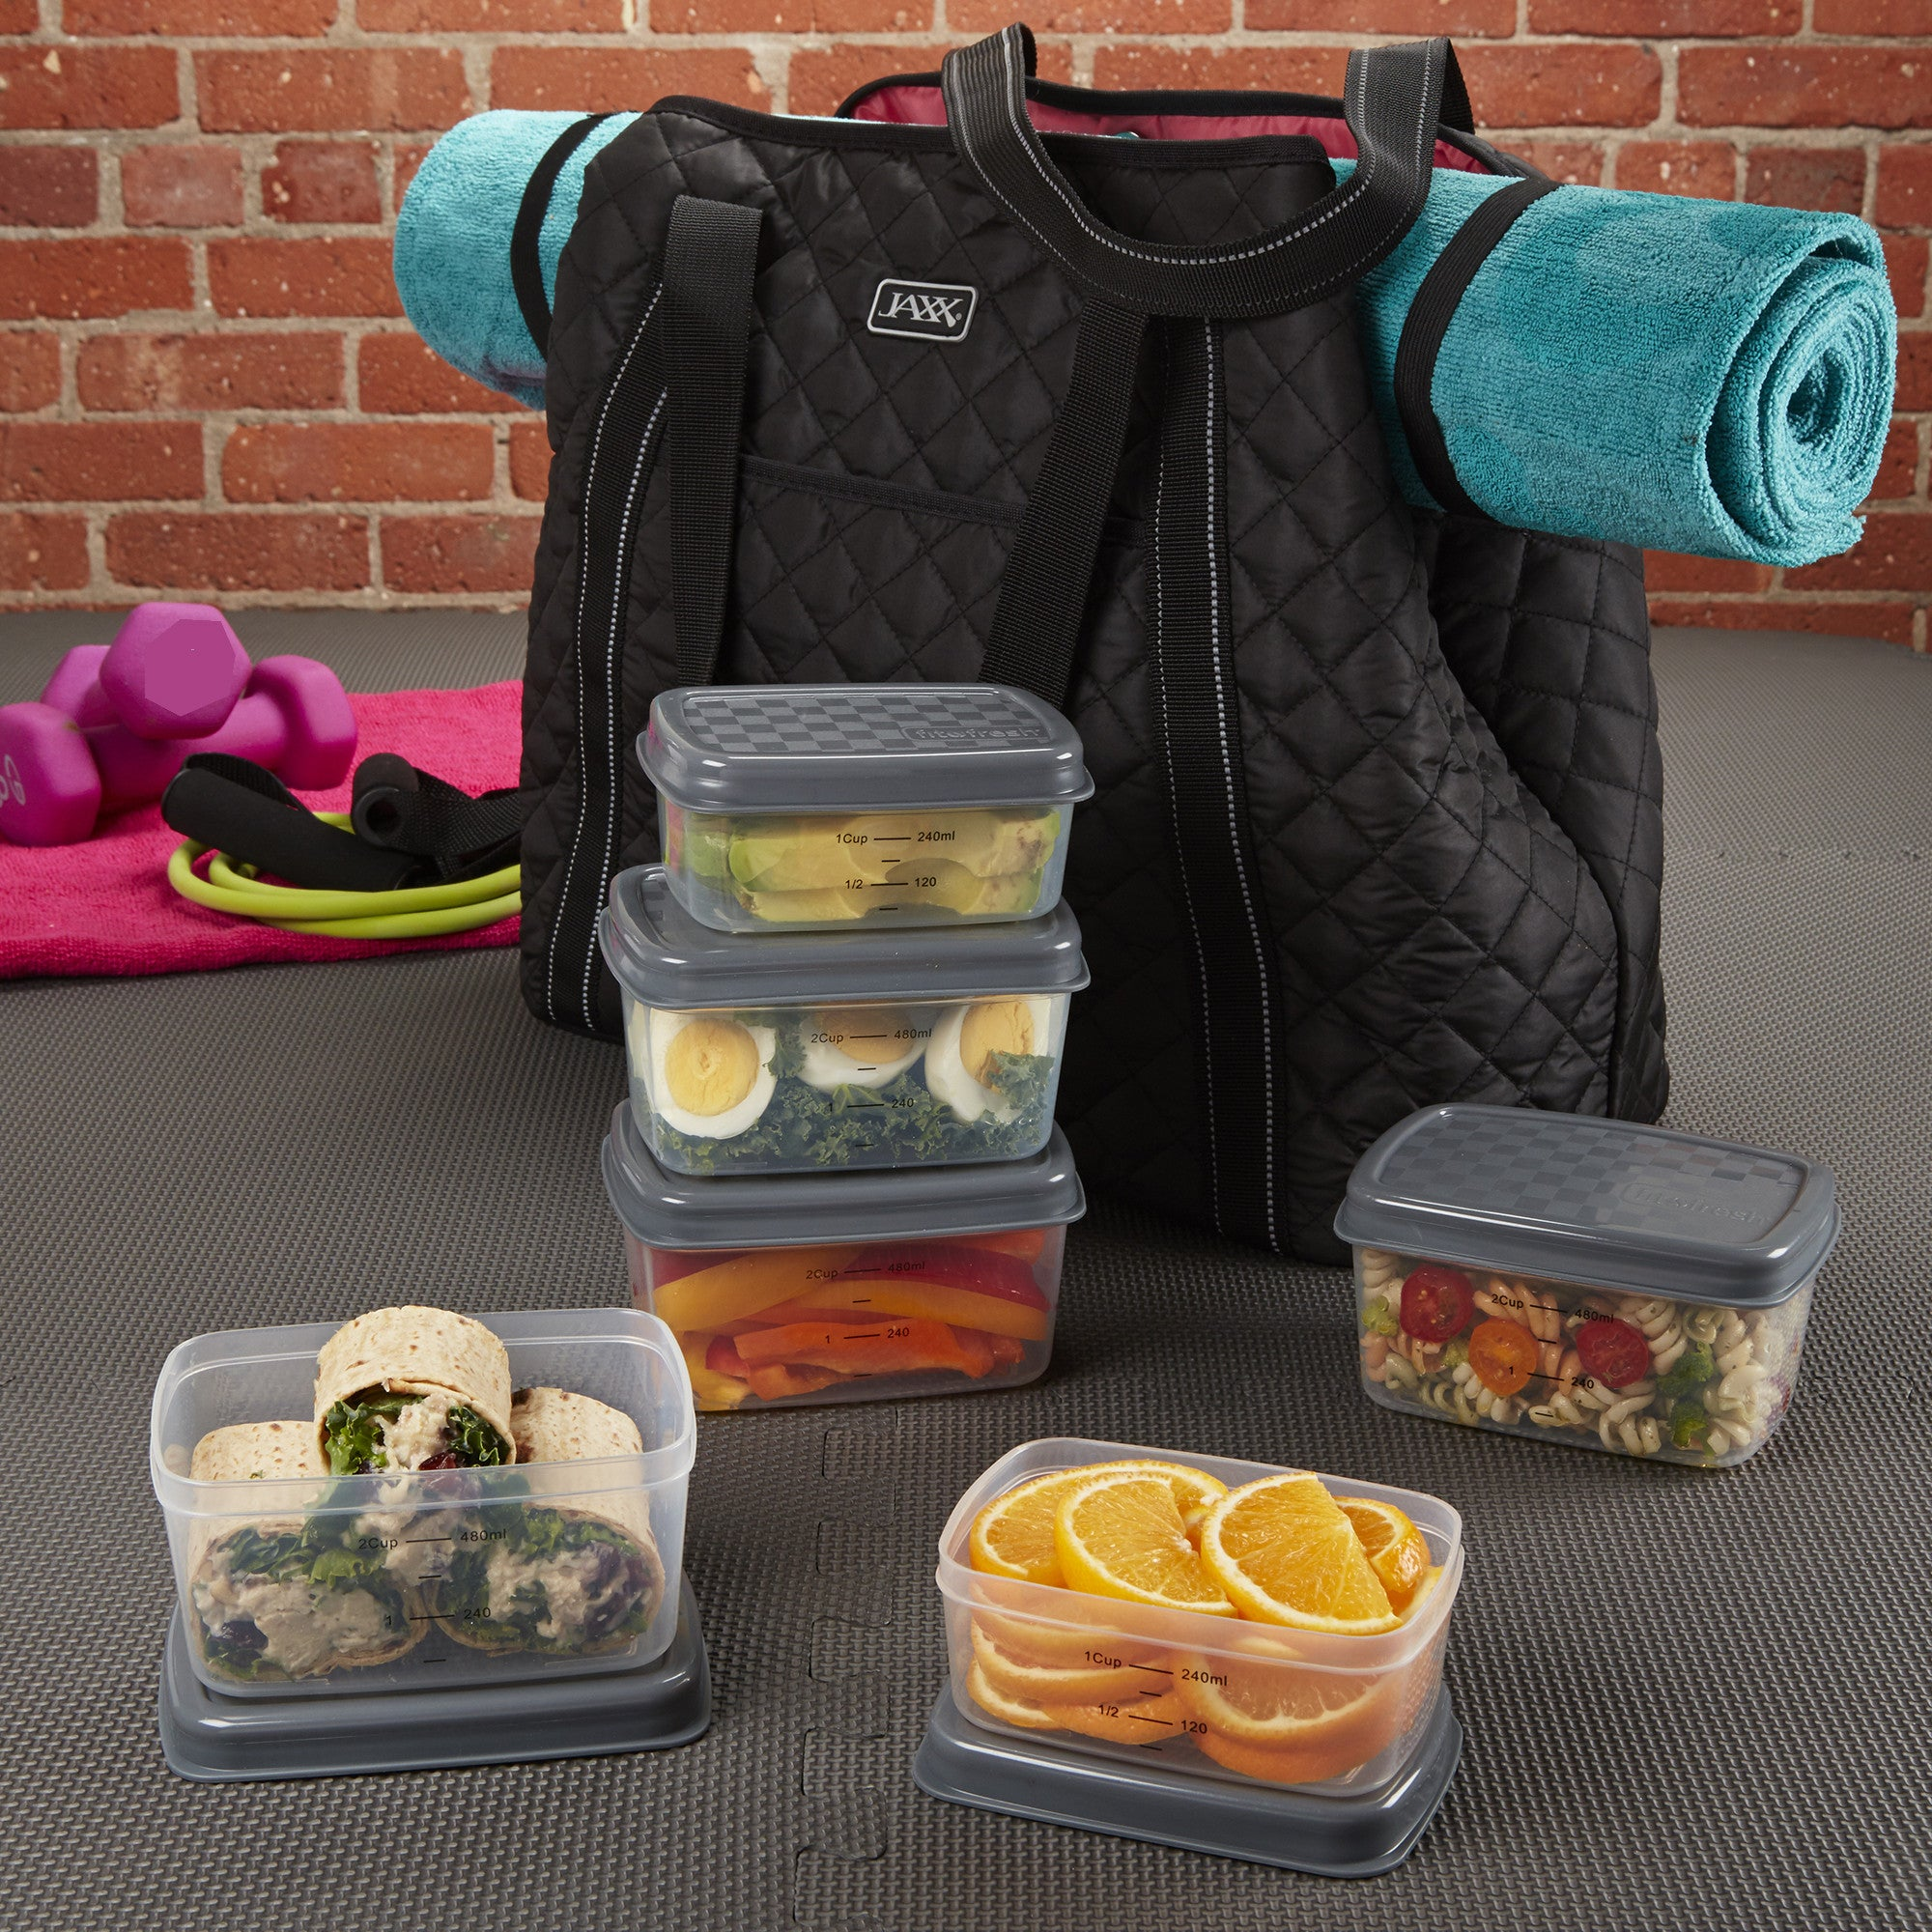 b10538064f3 Jaxx Quilted FitPak Meal Prep Yoga Bag with Portion Control Container Set